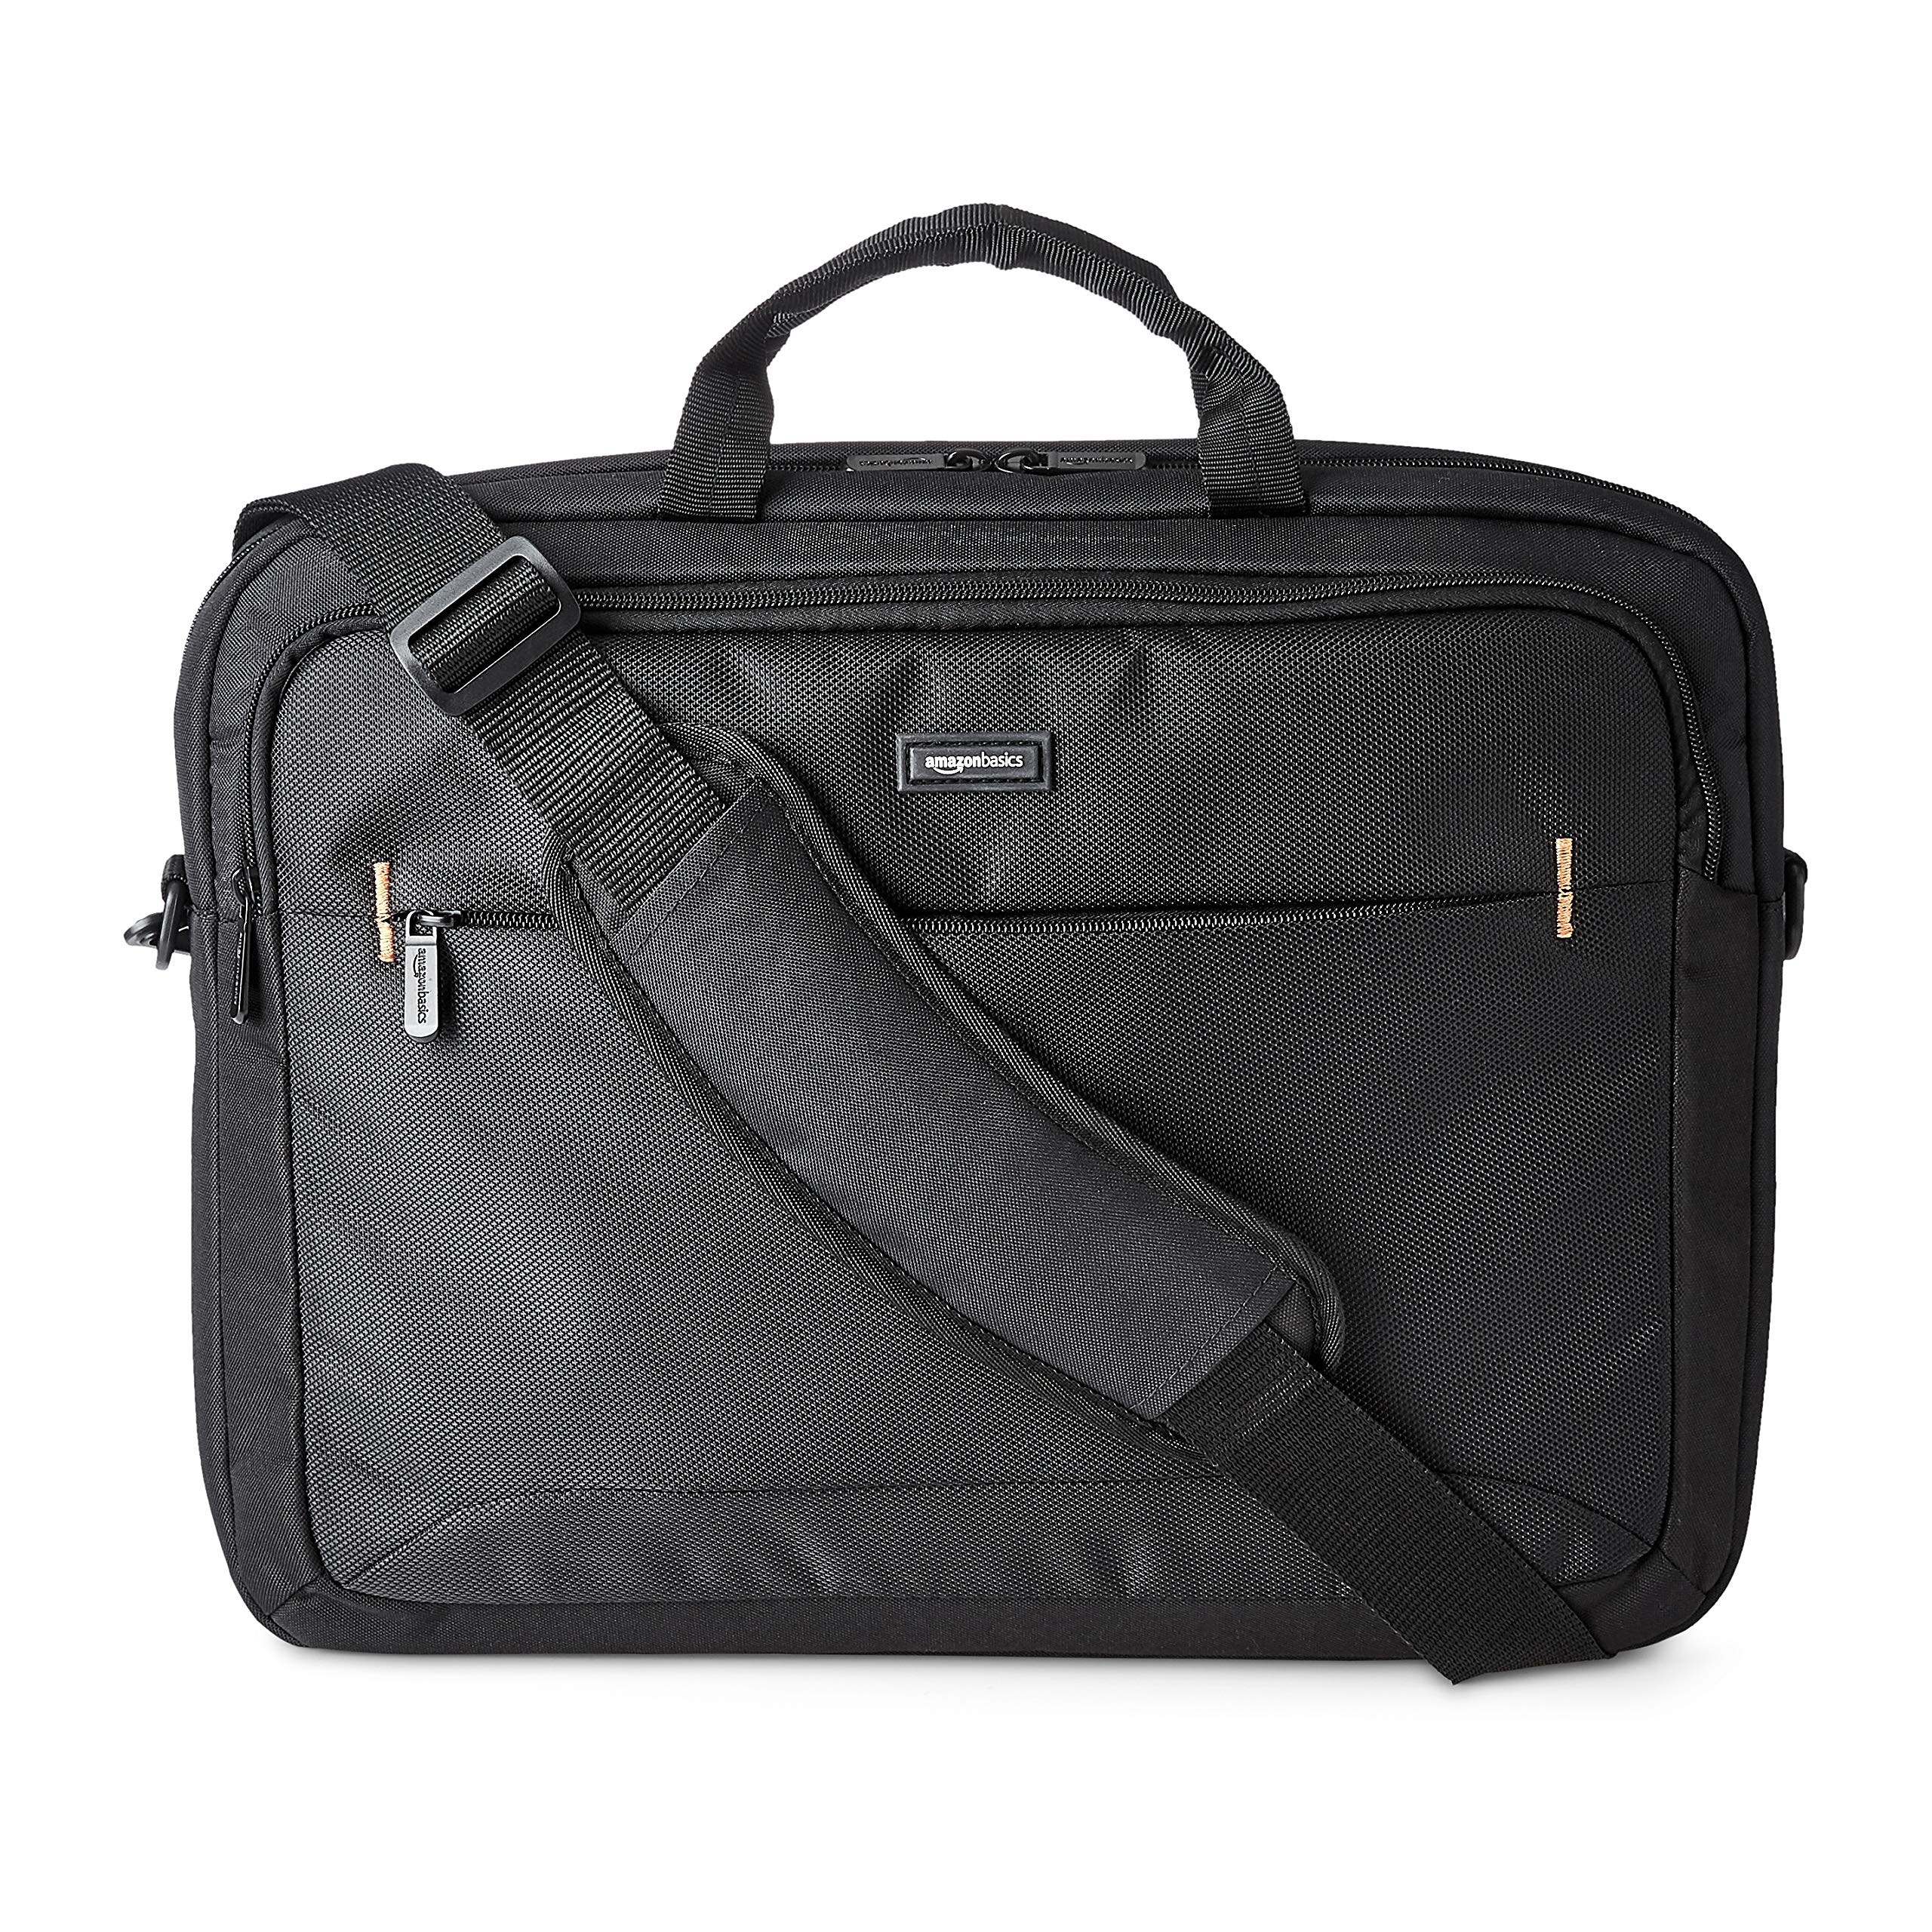 Amazon Basics 17.3-Inch Laptop Case Bag, Black, 1-Pack fits Dell, HP, ASUS, Lenovo, MacBook Pro and more